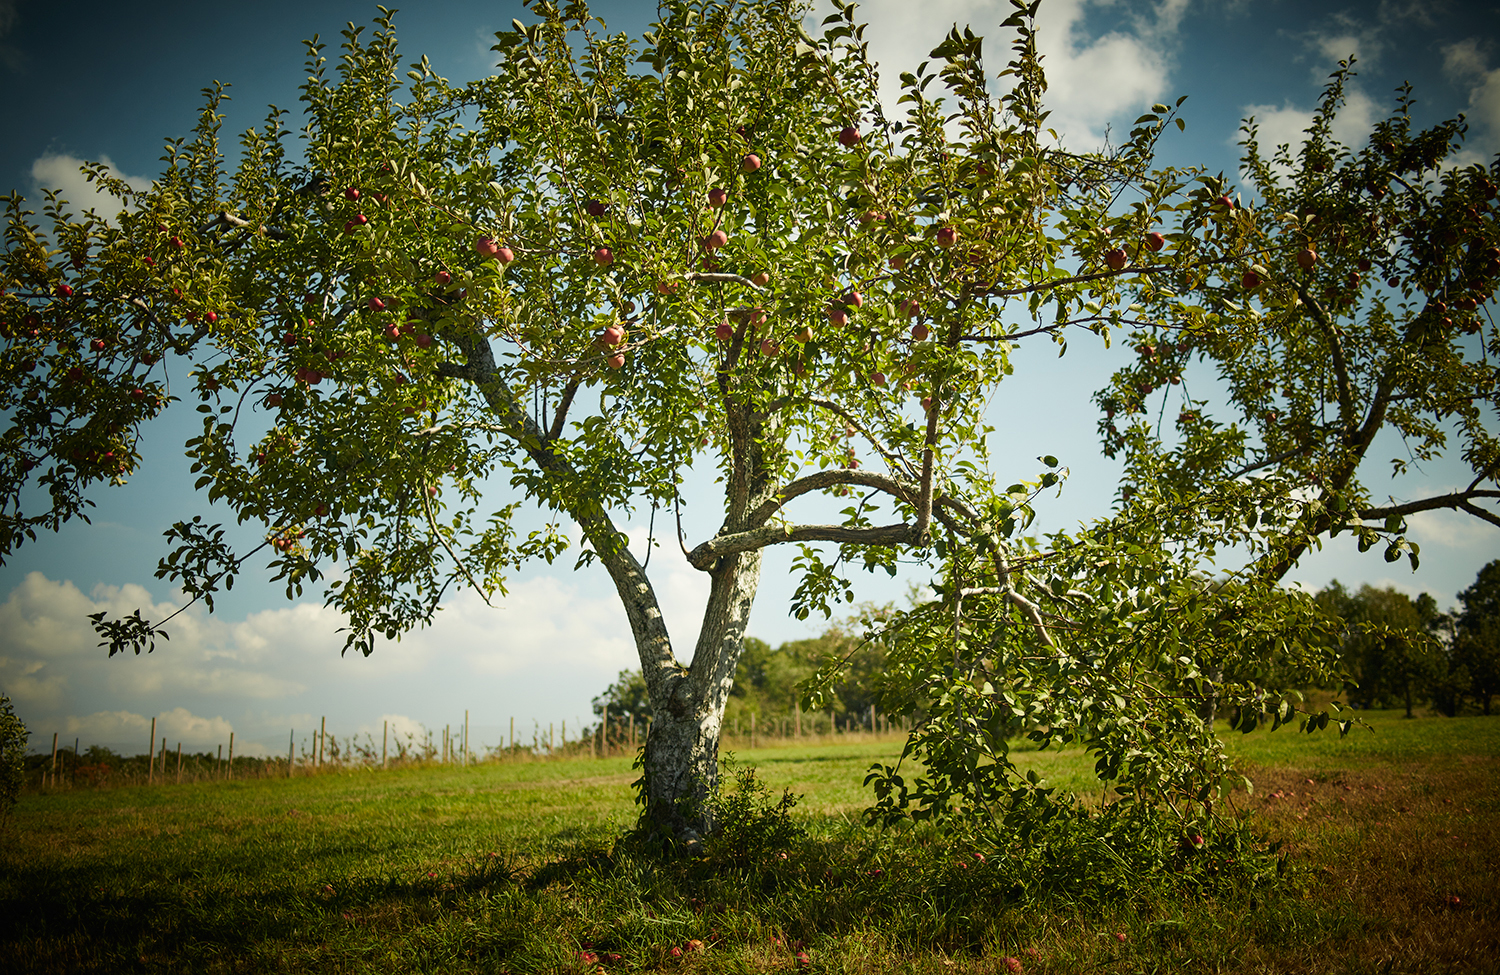 091915_Apple_Picking_OuthouseOrchards_432.jpg